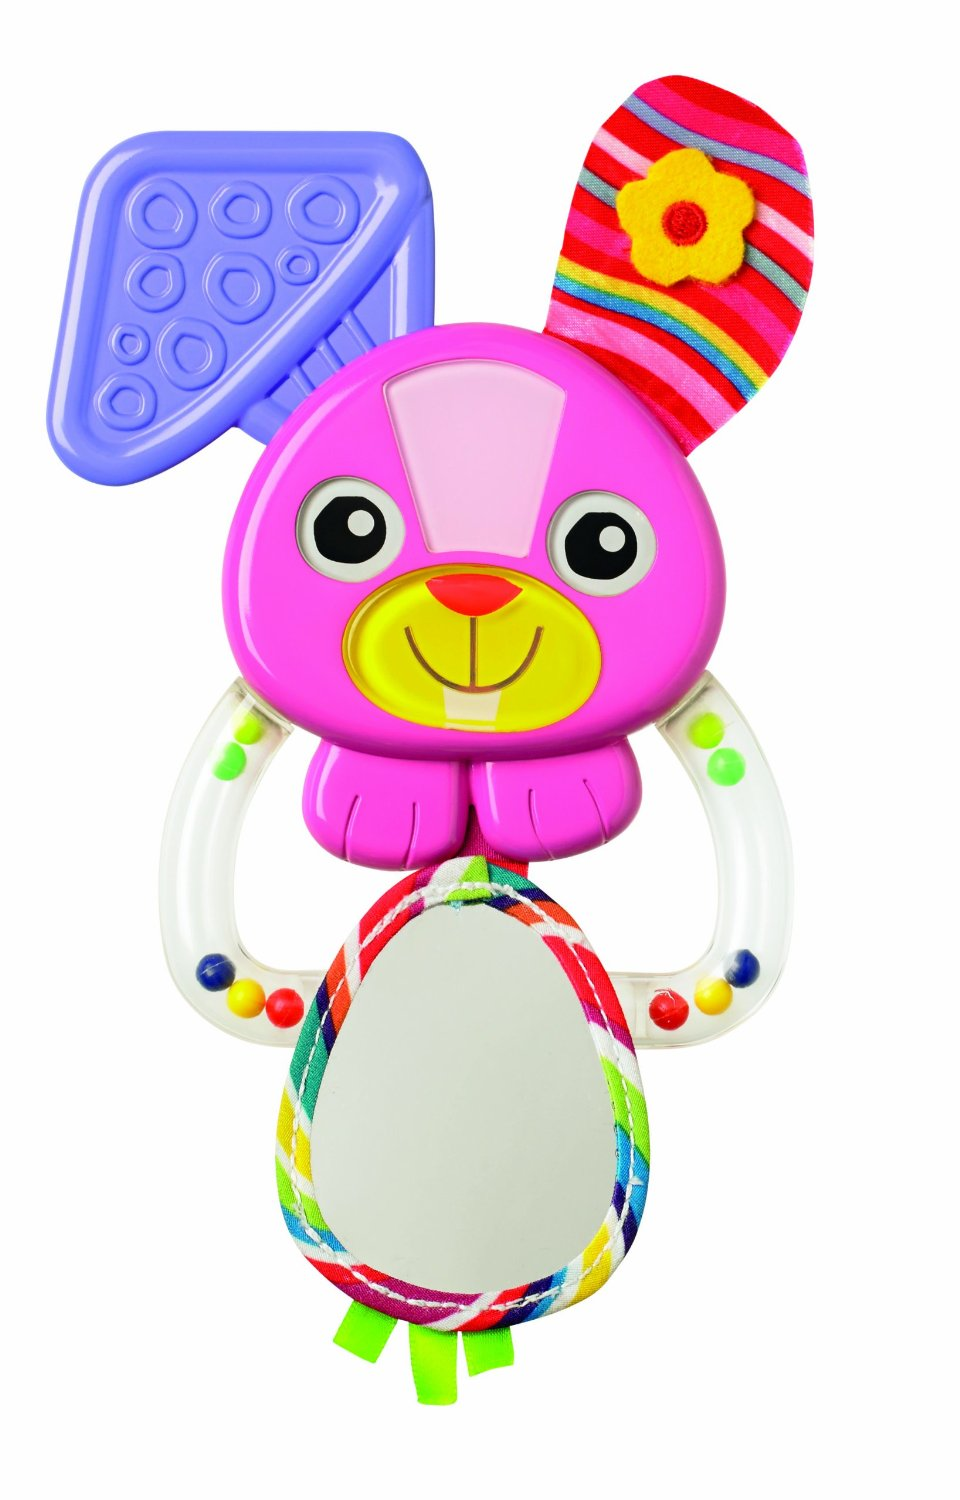 Rattle by Lamaze, available in Bella Bunny or Click Clack Jack the Crab Ages 0 months+ $9.99